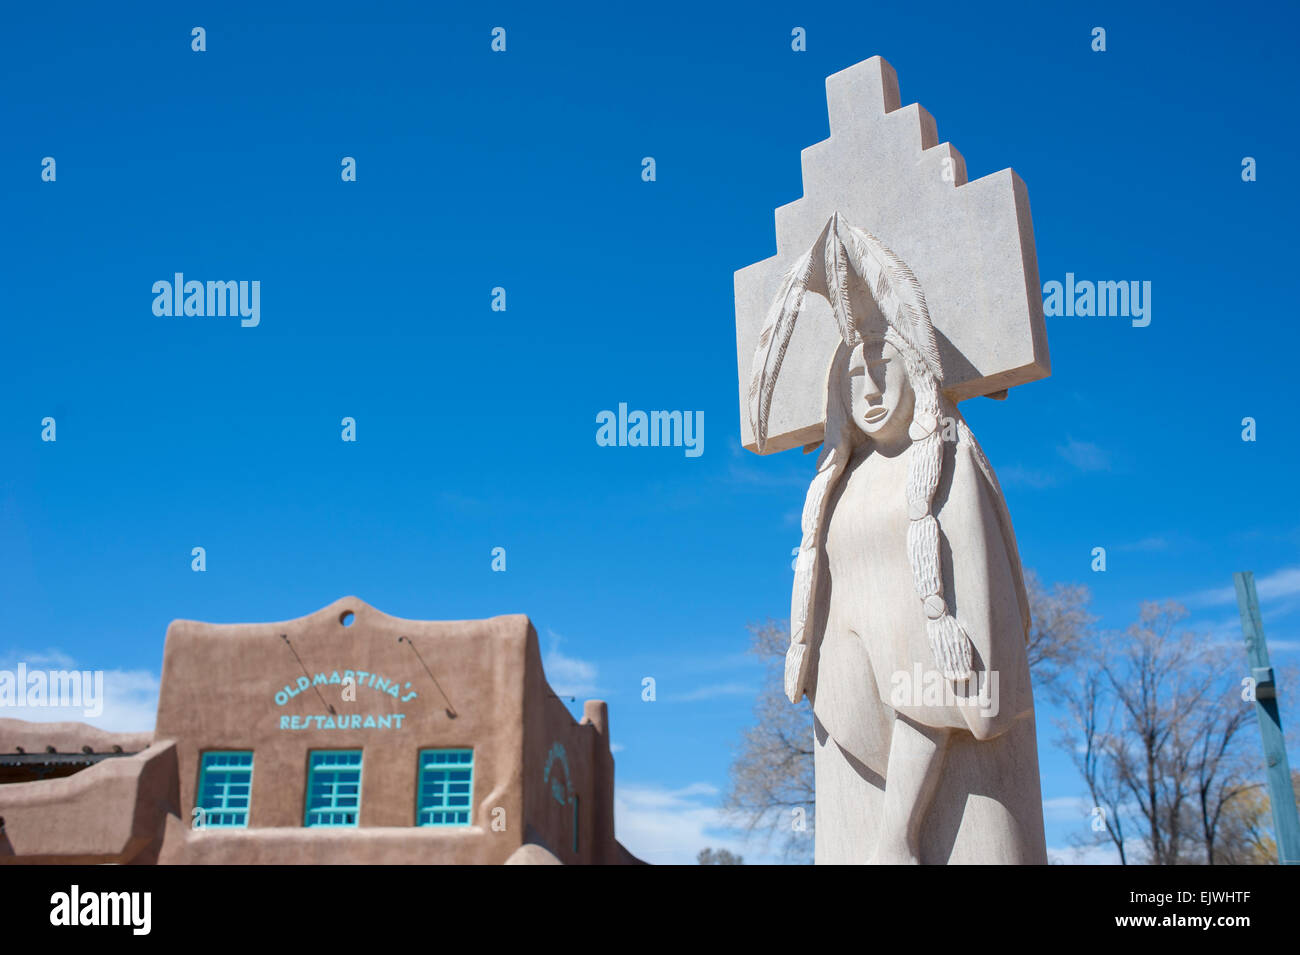 Taos plaza stock photos taos plaza stock images alamy usa new mexico nm rancho de taos american indian sulpture in the plaza across from old publicscrutiny Images